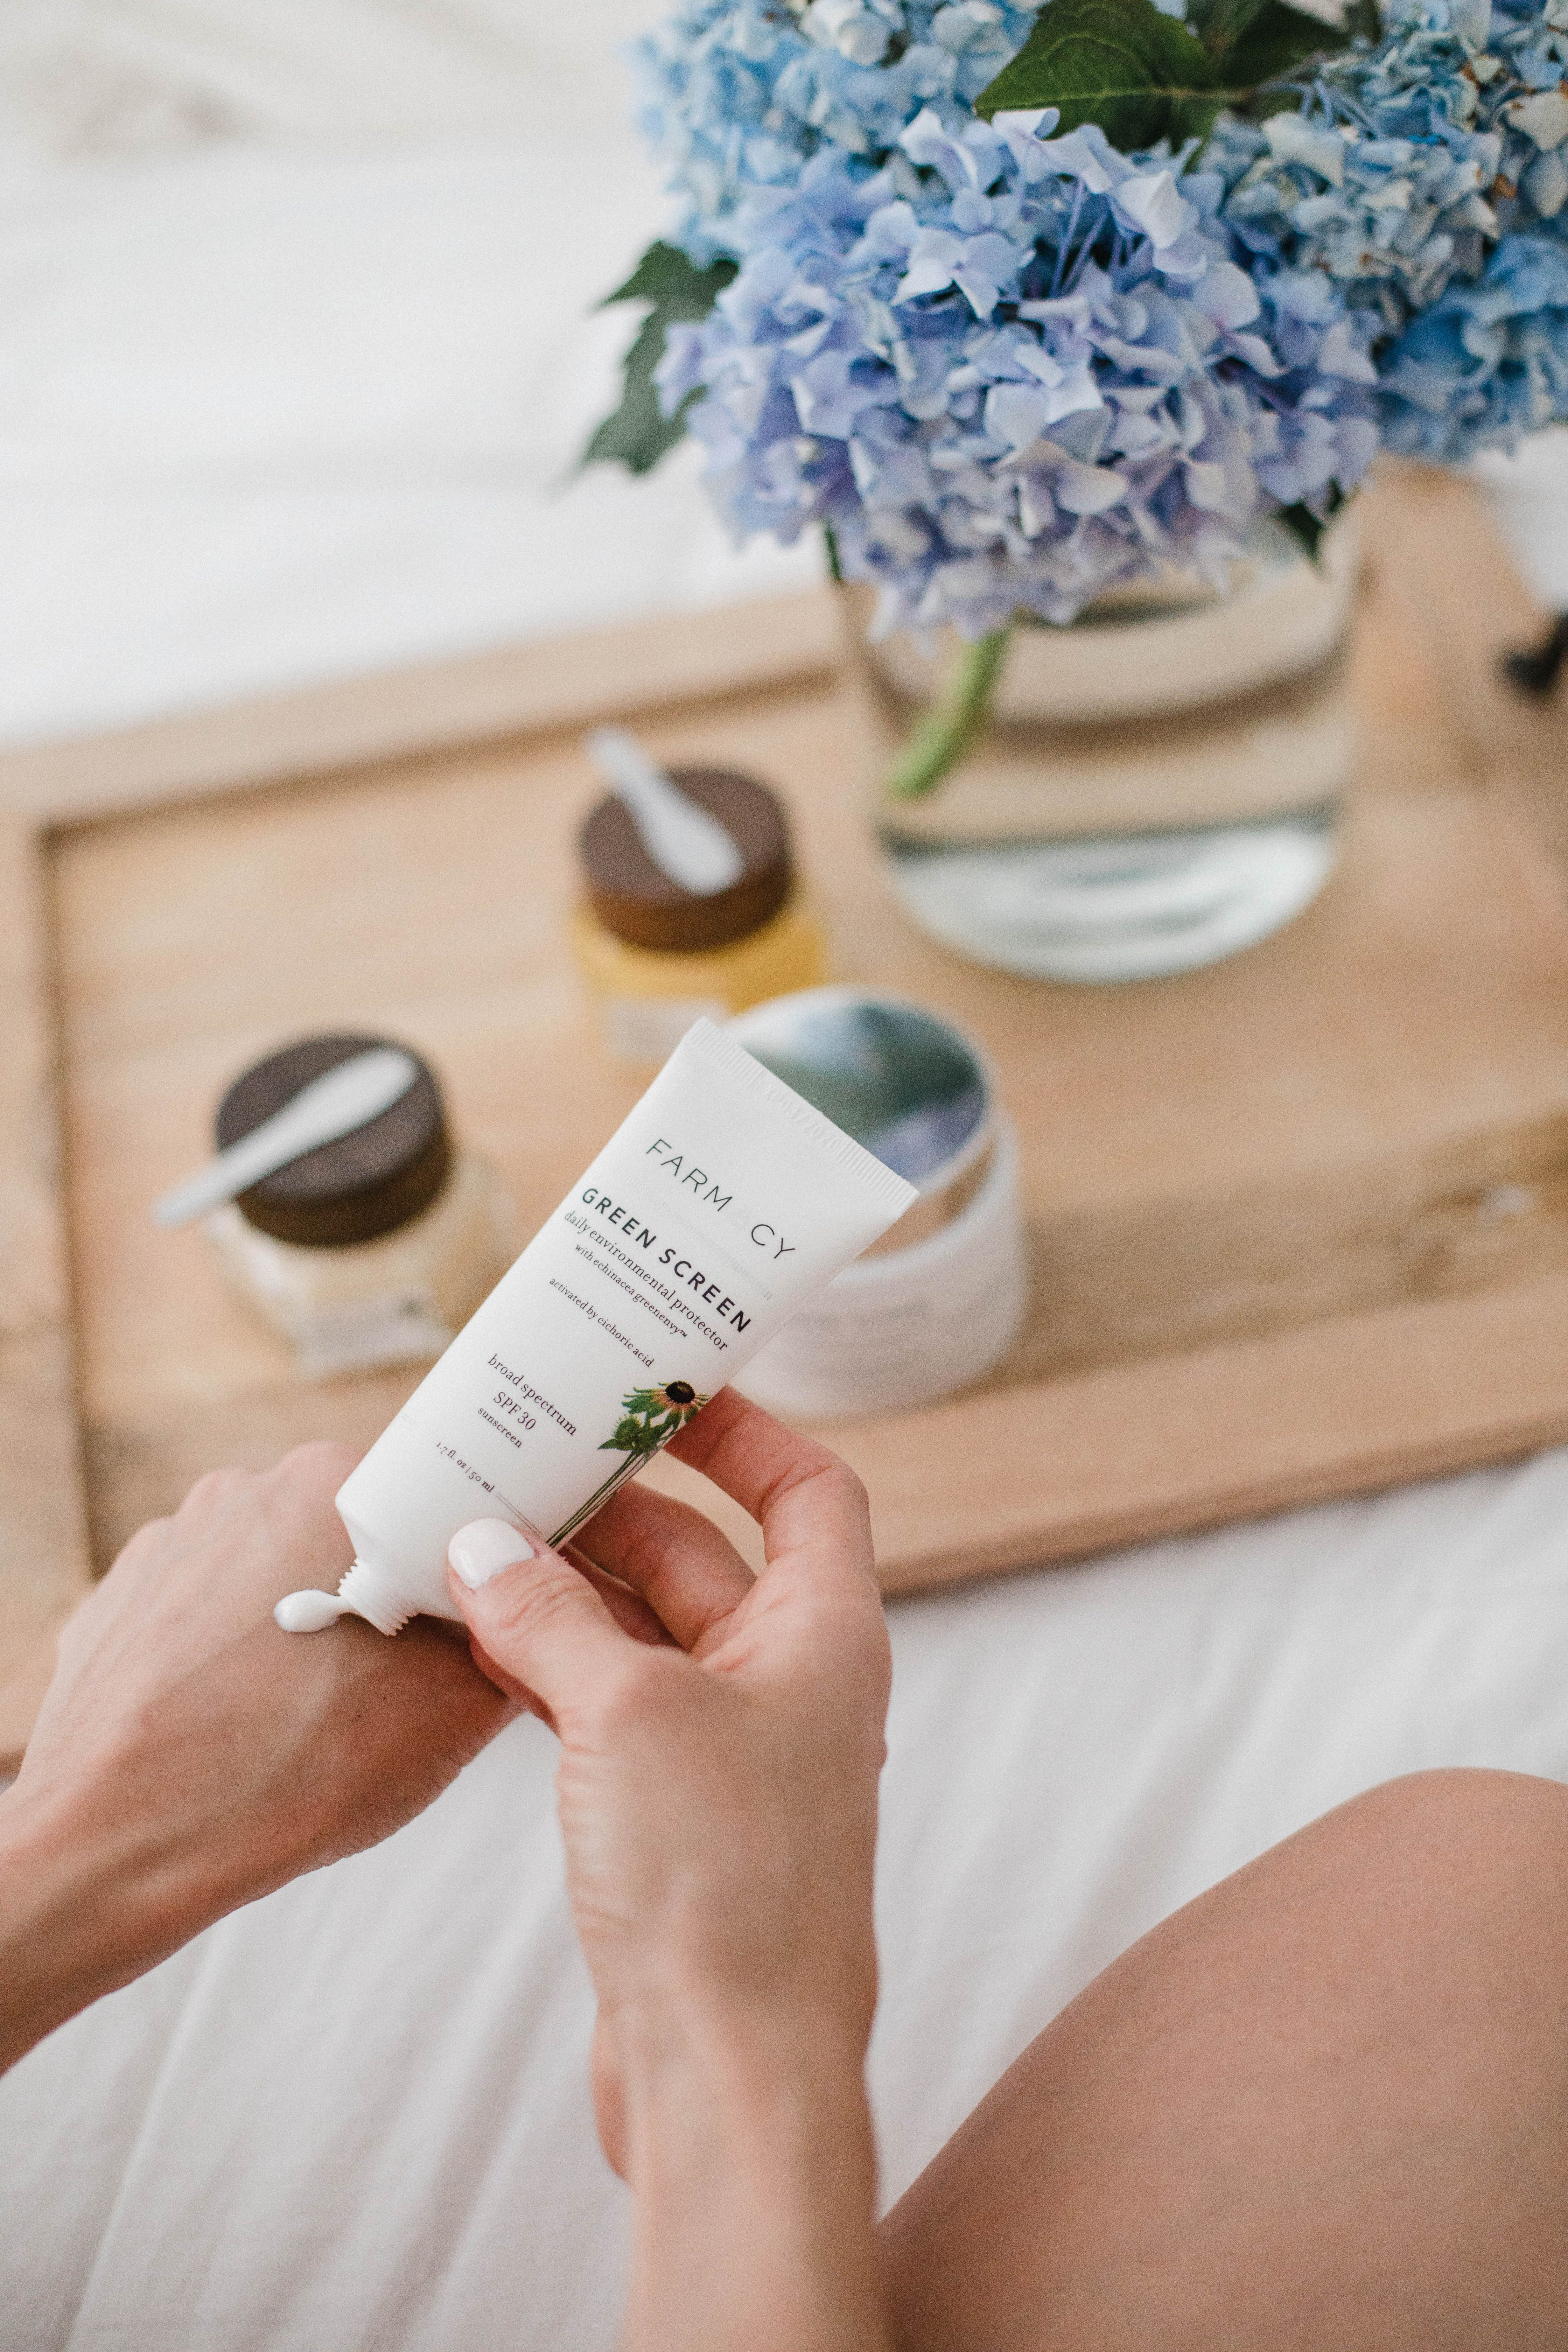 Bestselling clean skincare products from farmacy beauty